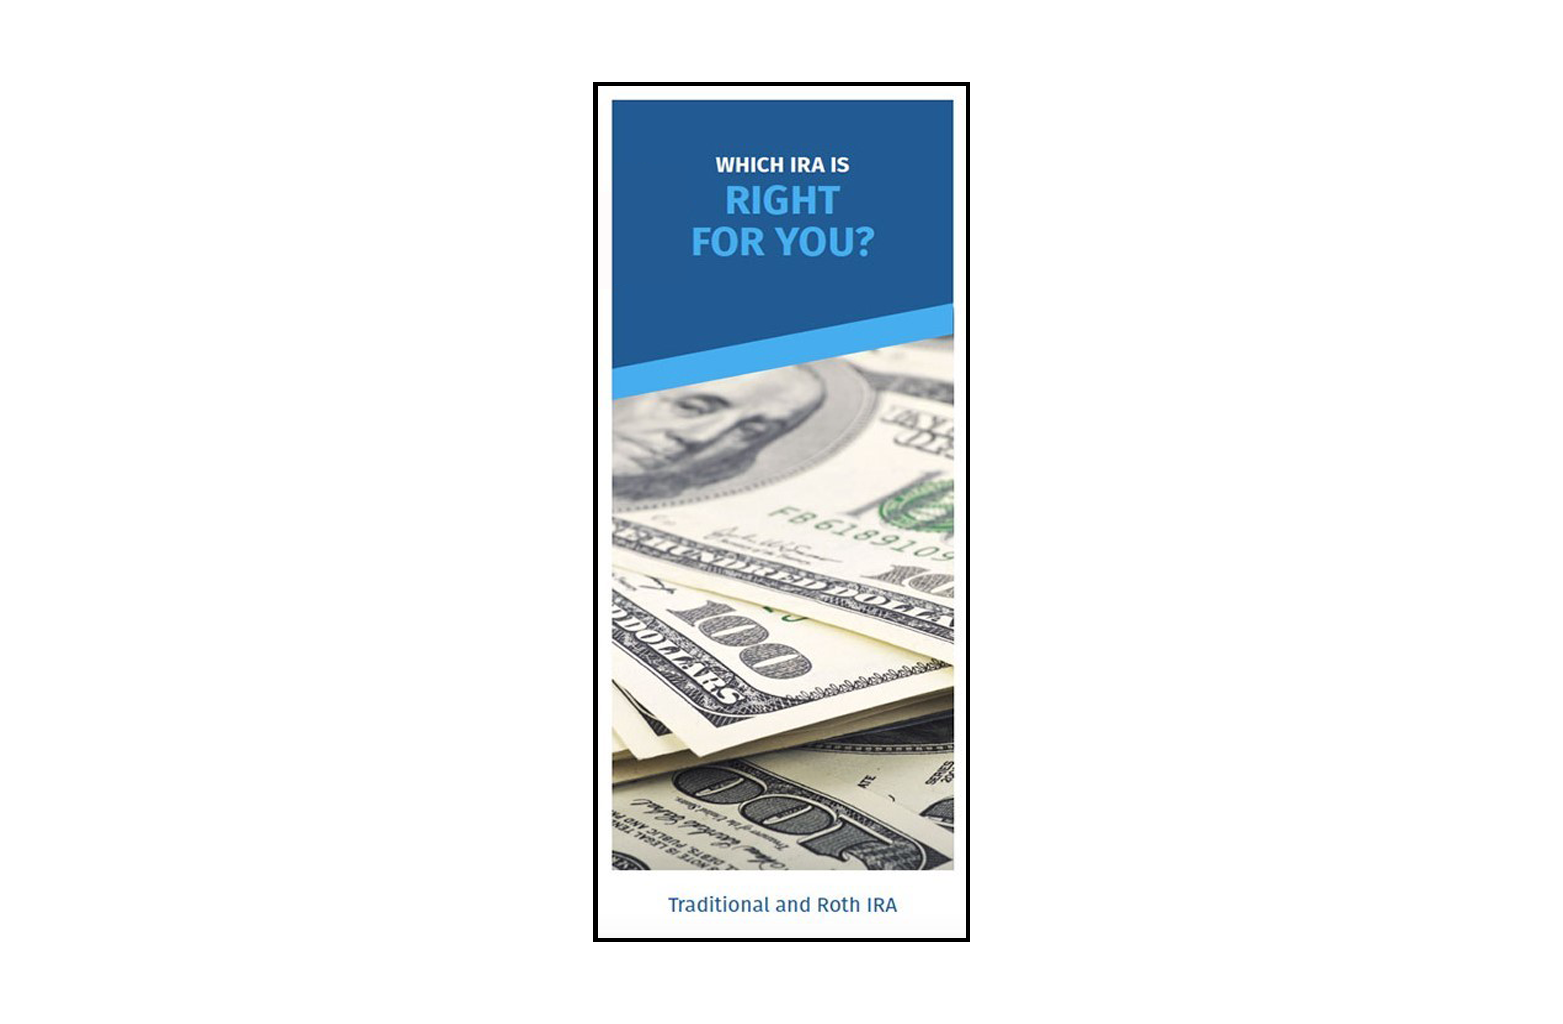 Which IRA is right for you brochure